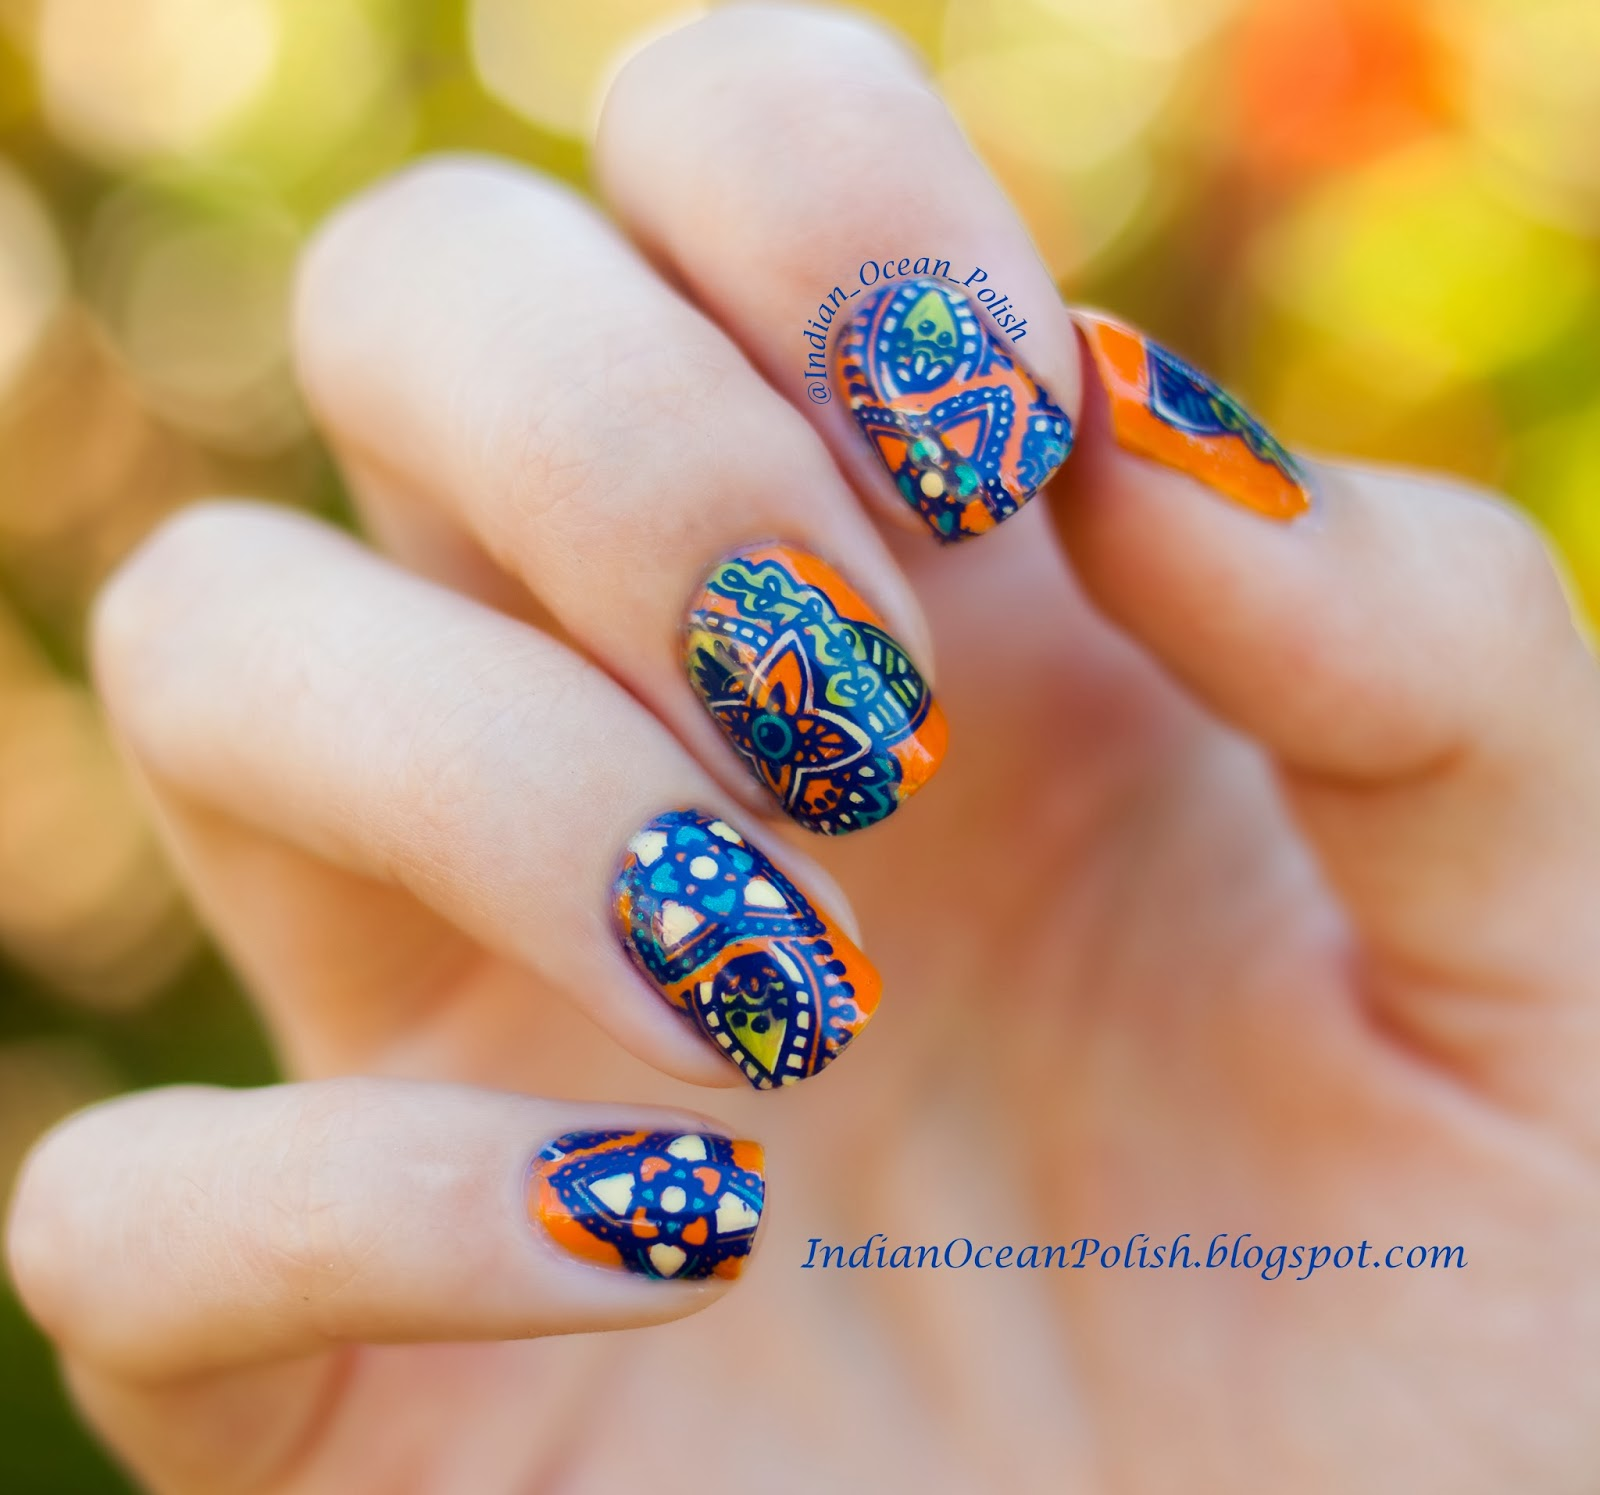 Nail Art London: Indian Ocean Polish: Stained Glass Homemade Nail Decals